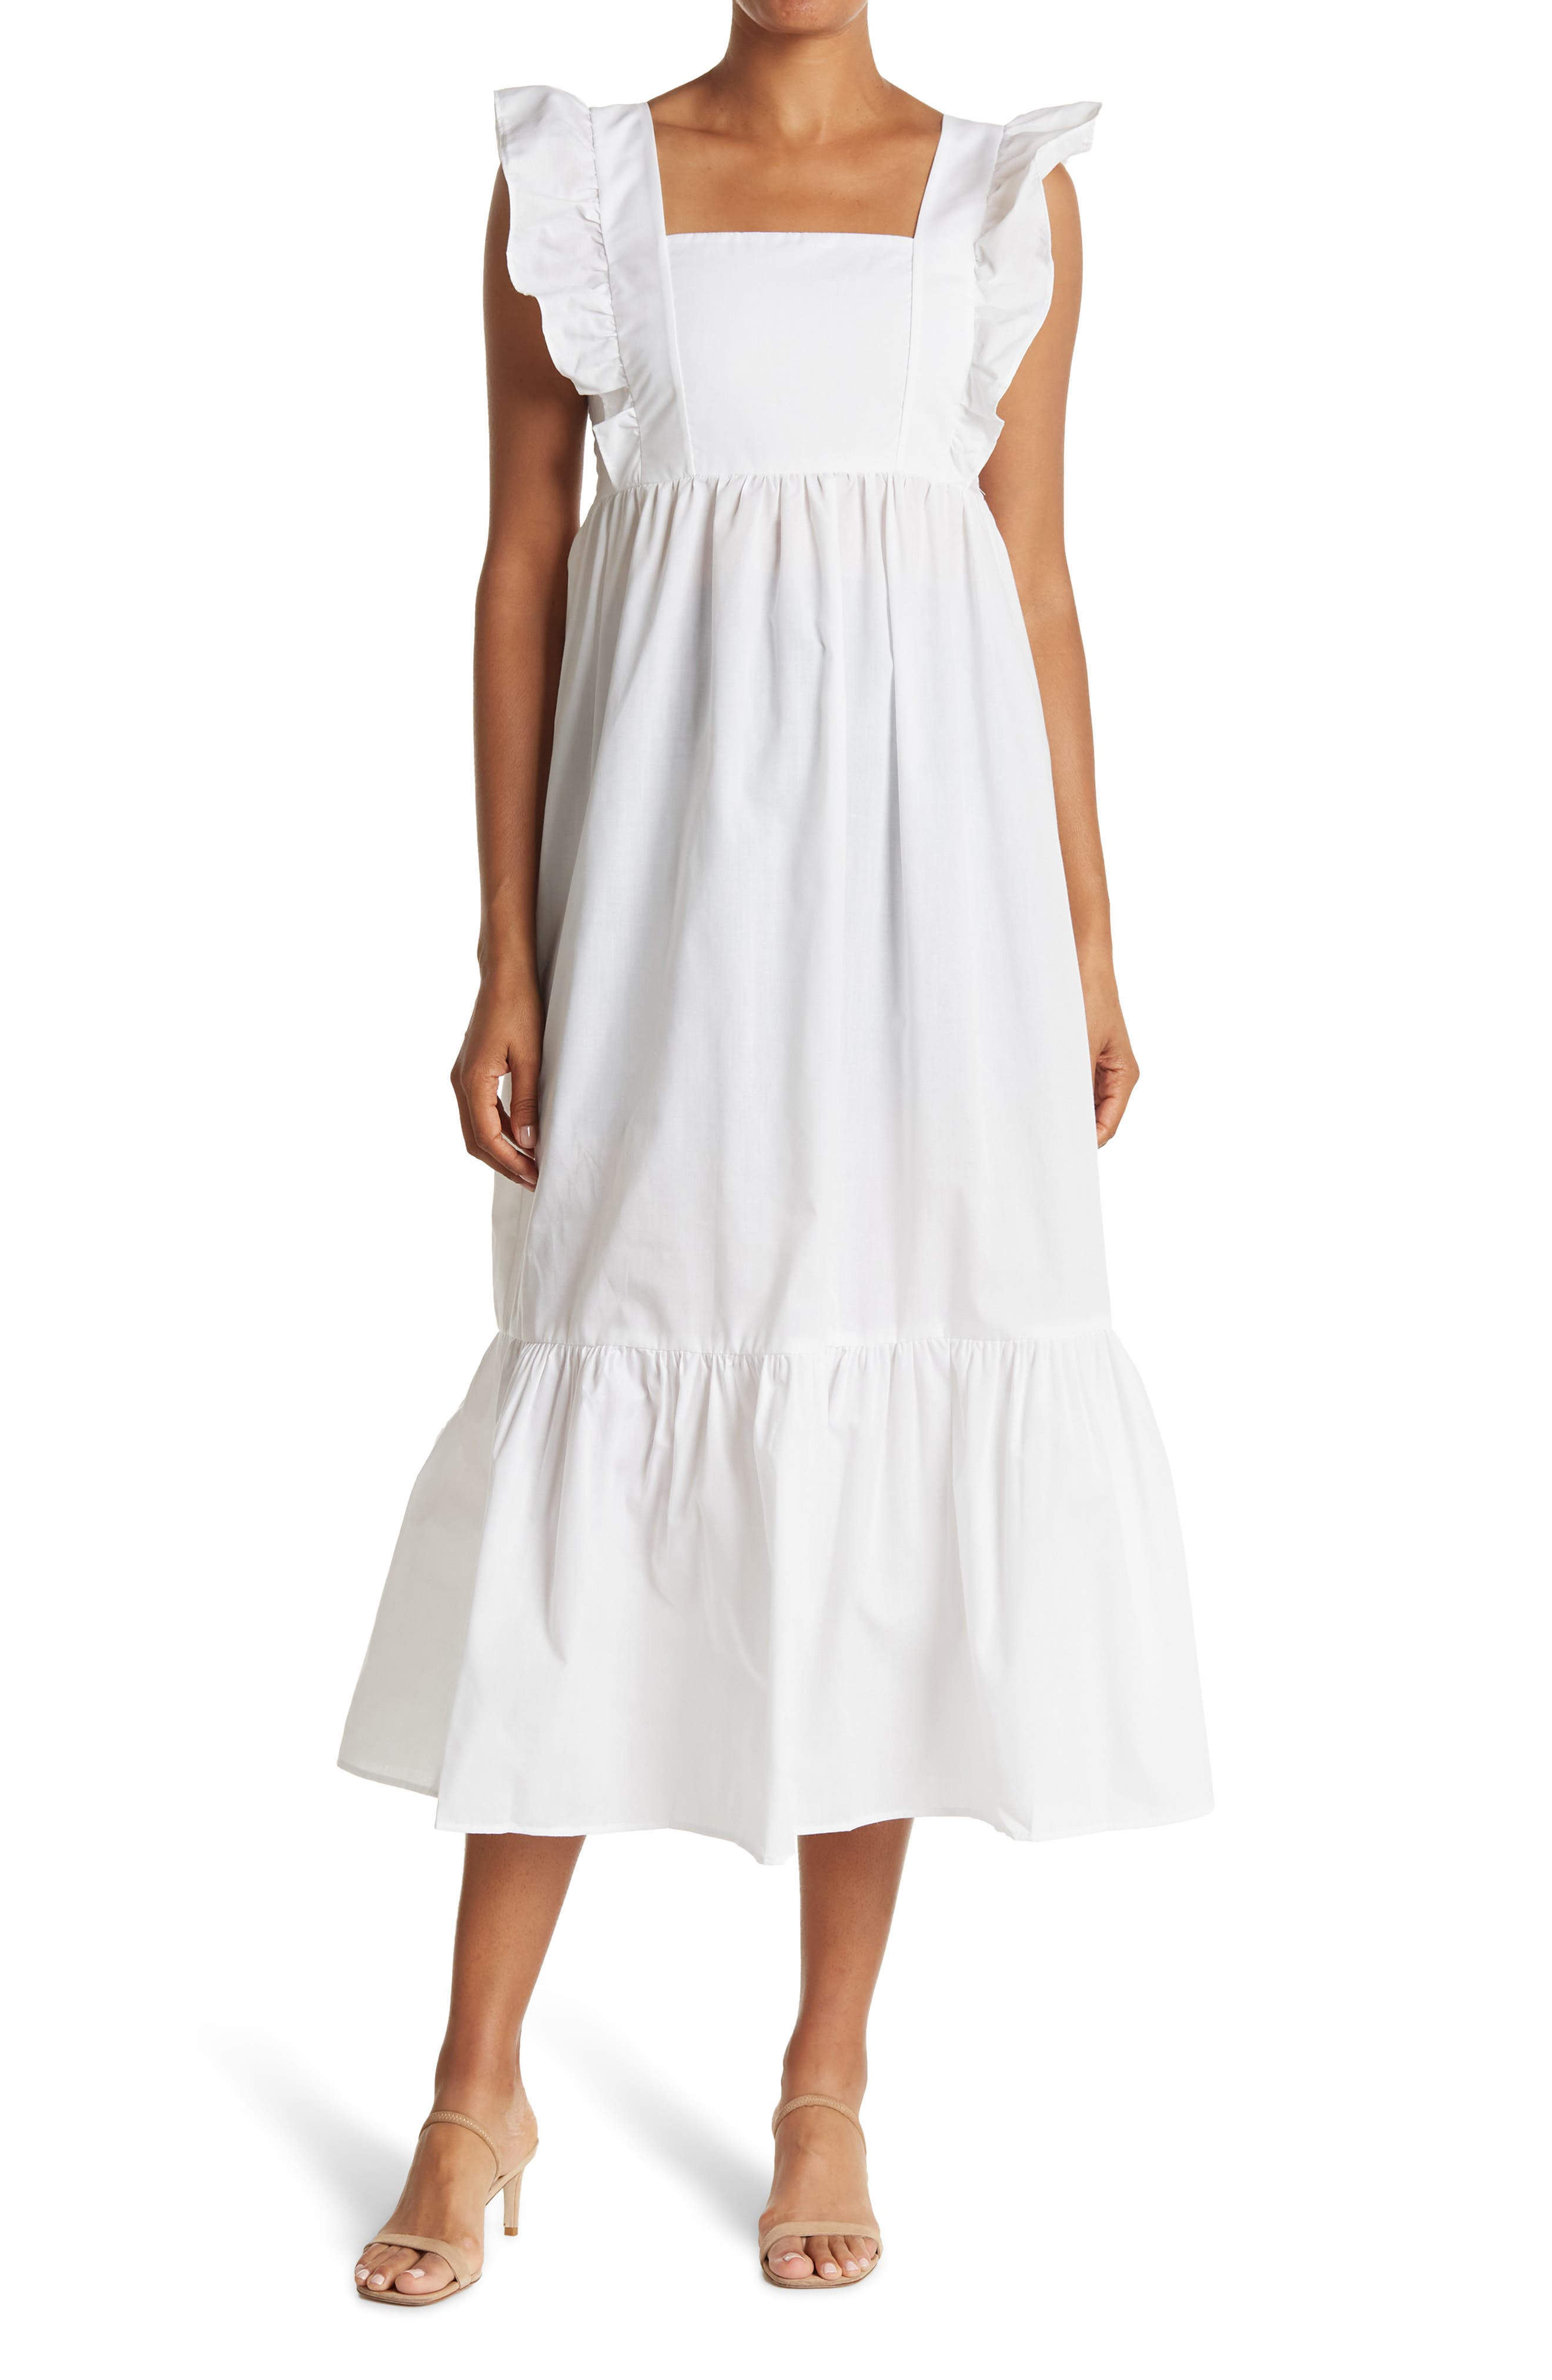 1900 -1910s Edwardian Fashion, Clothing & Costumes LOVE. ADY Poplin Flutter Sleeve Tiered Midi Dress Size Large in White at Nordstrom Rack $49.97 AT vintagedancer.com